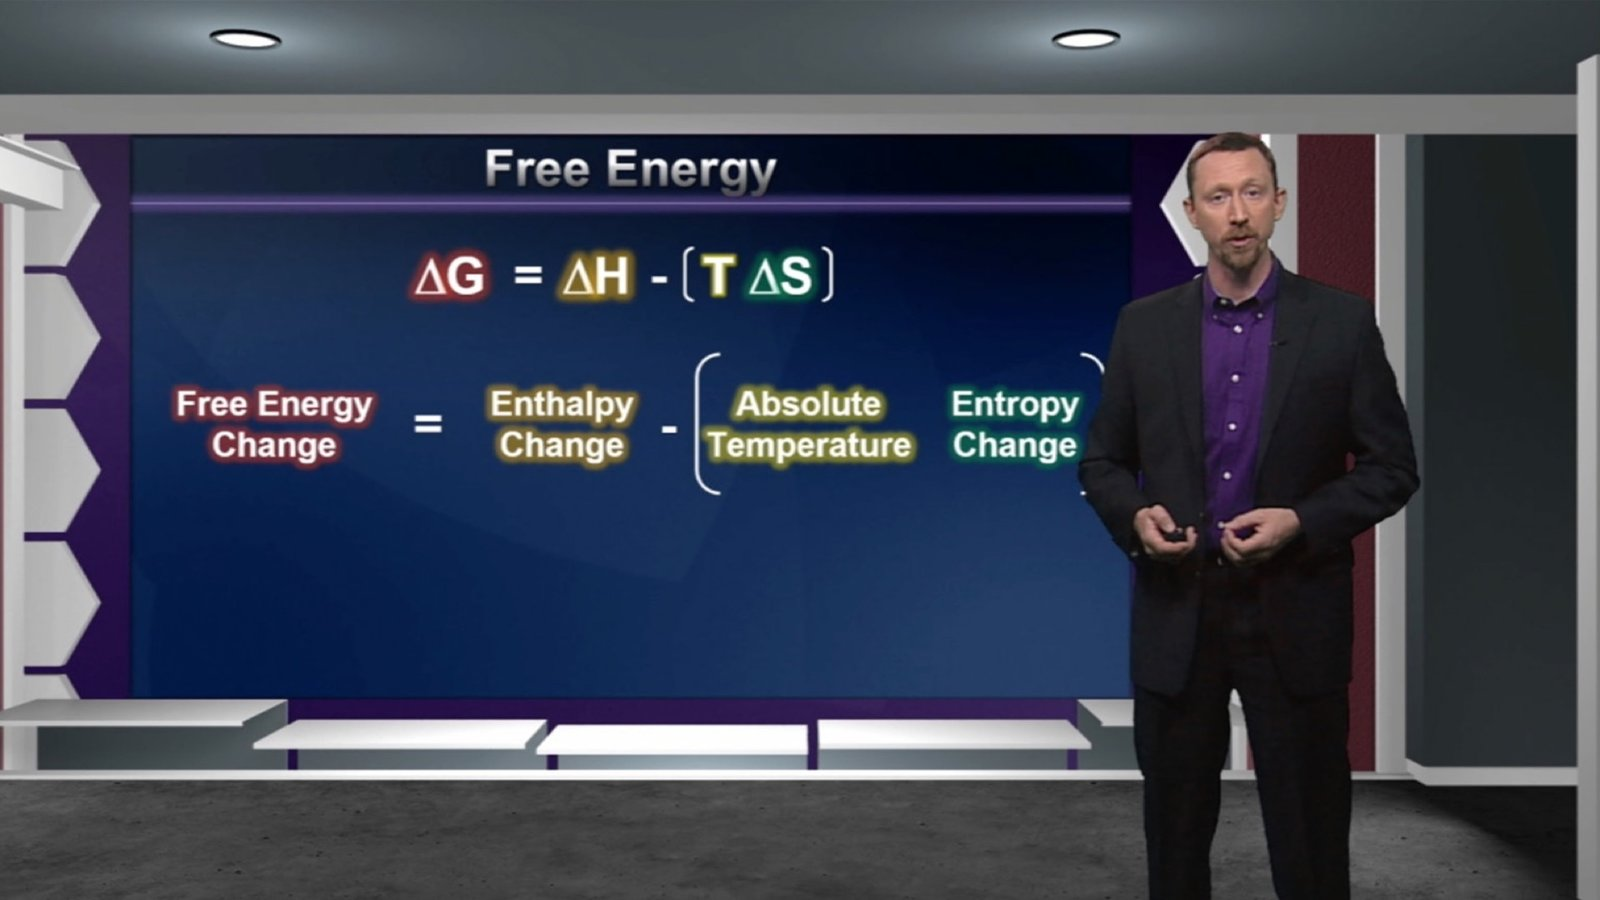 Influence of Free Energy